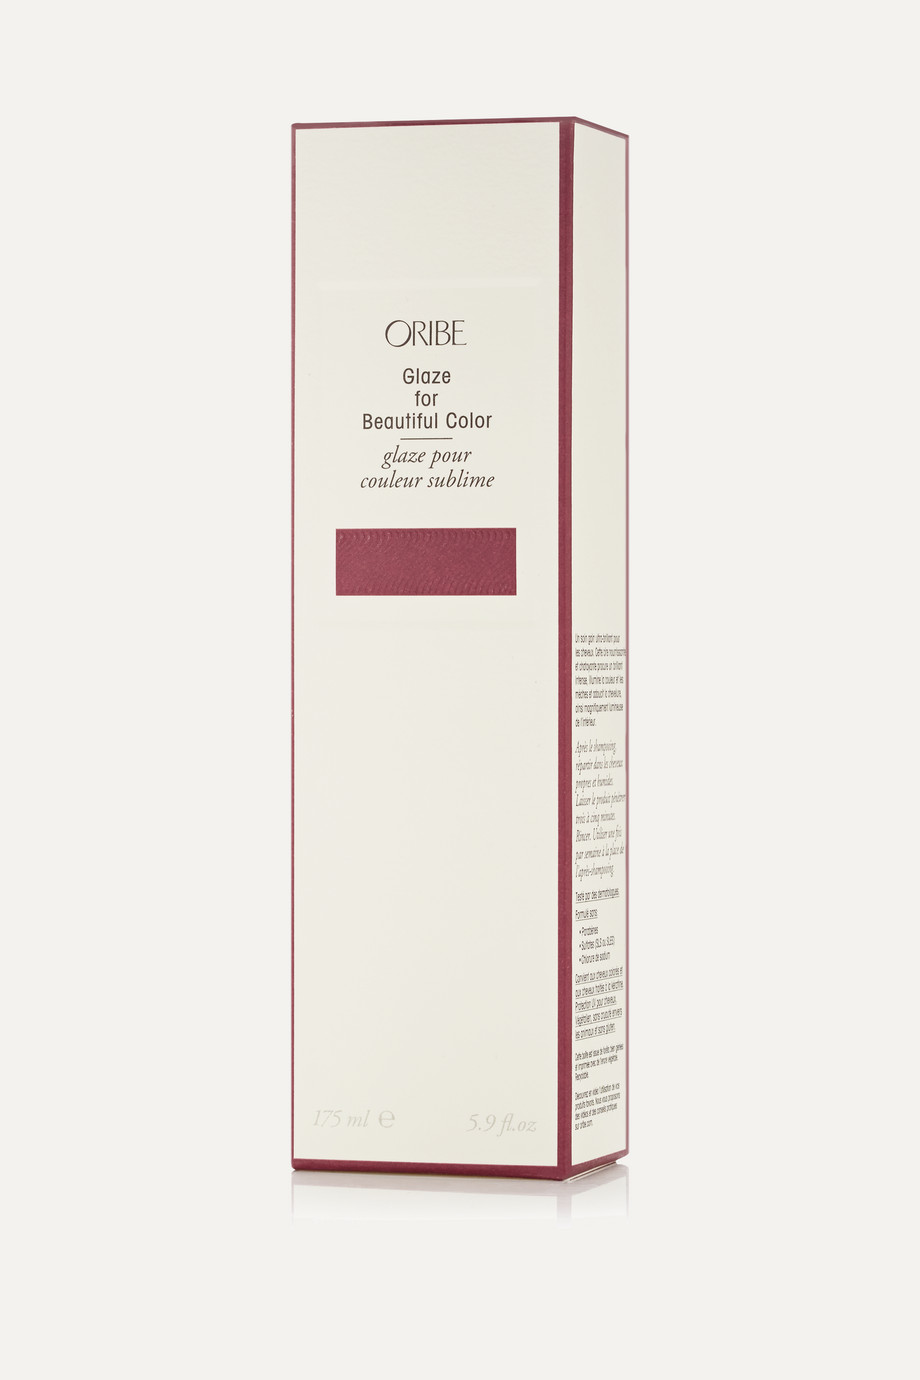 ORIBE Glaze For Beautiful Hair Color, 175ml